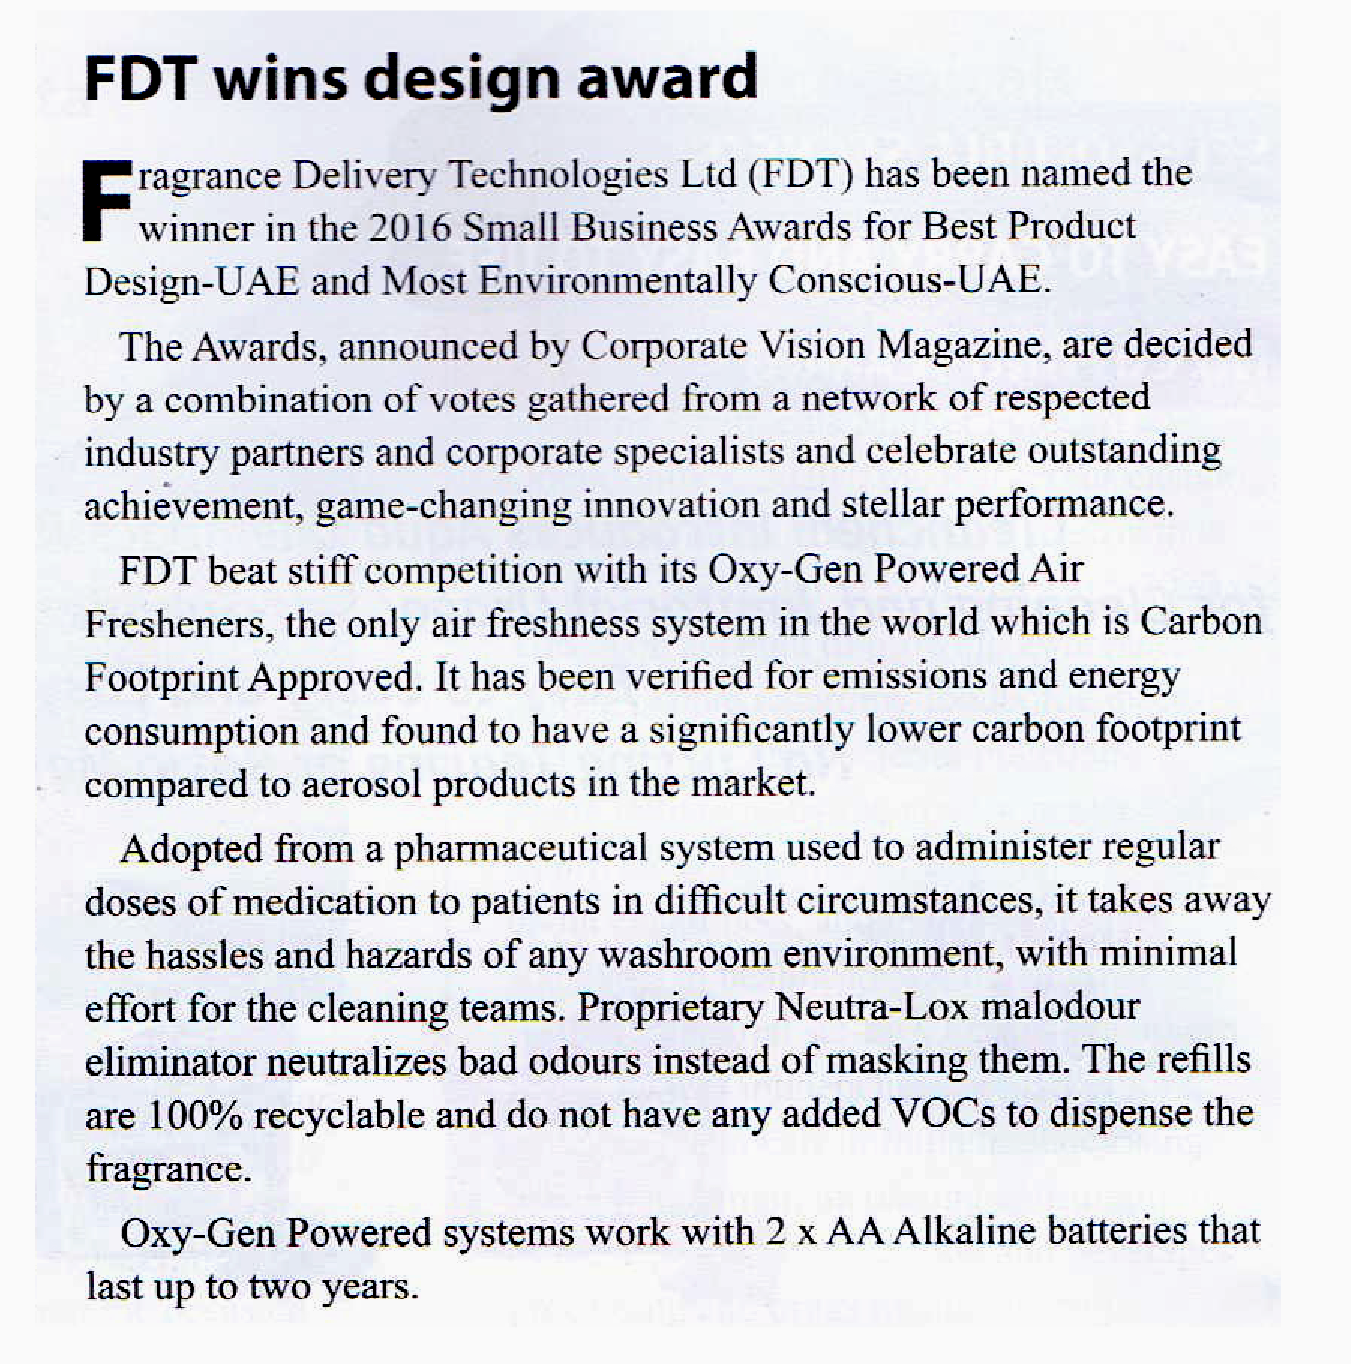 FDT wins Design Award